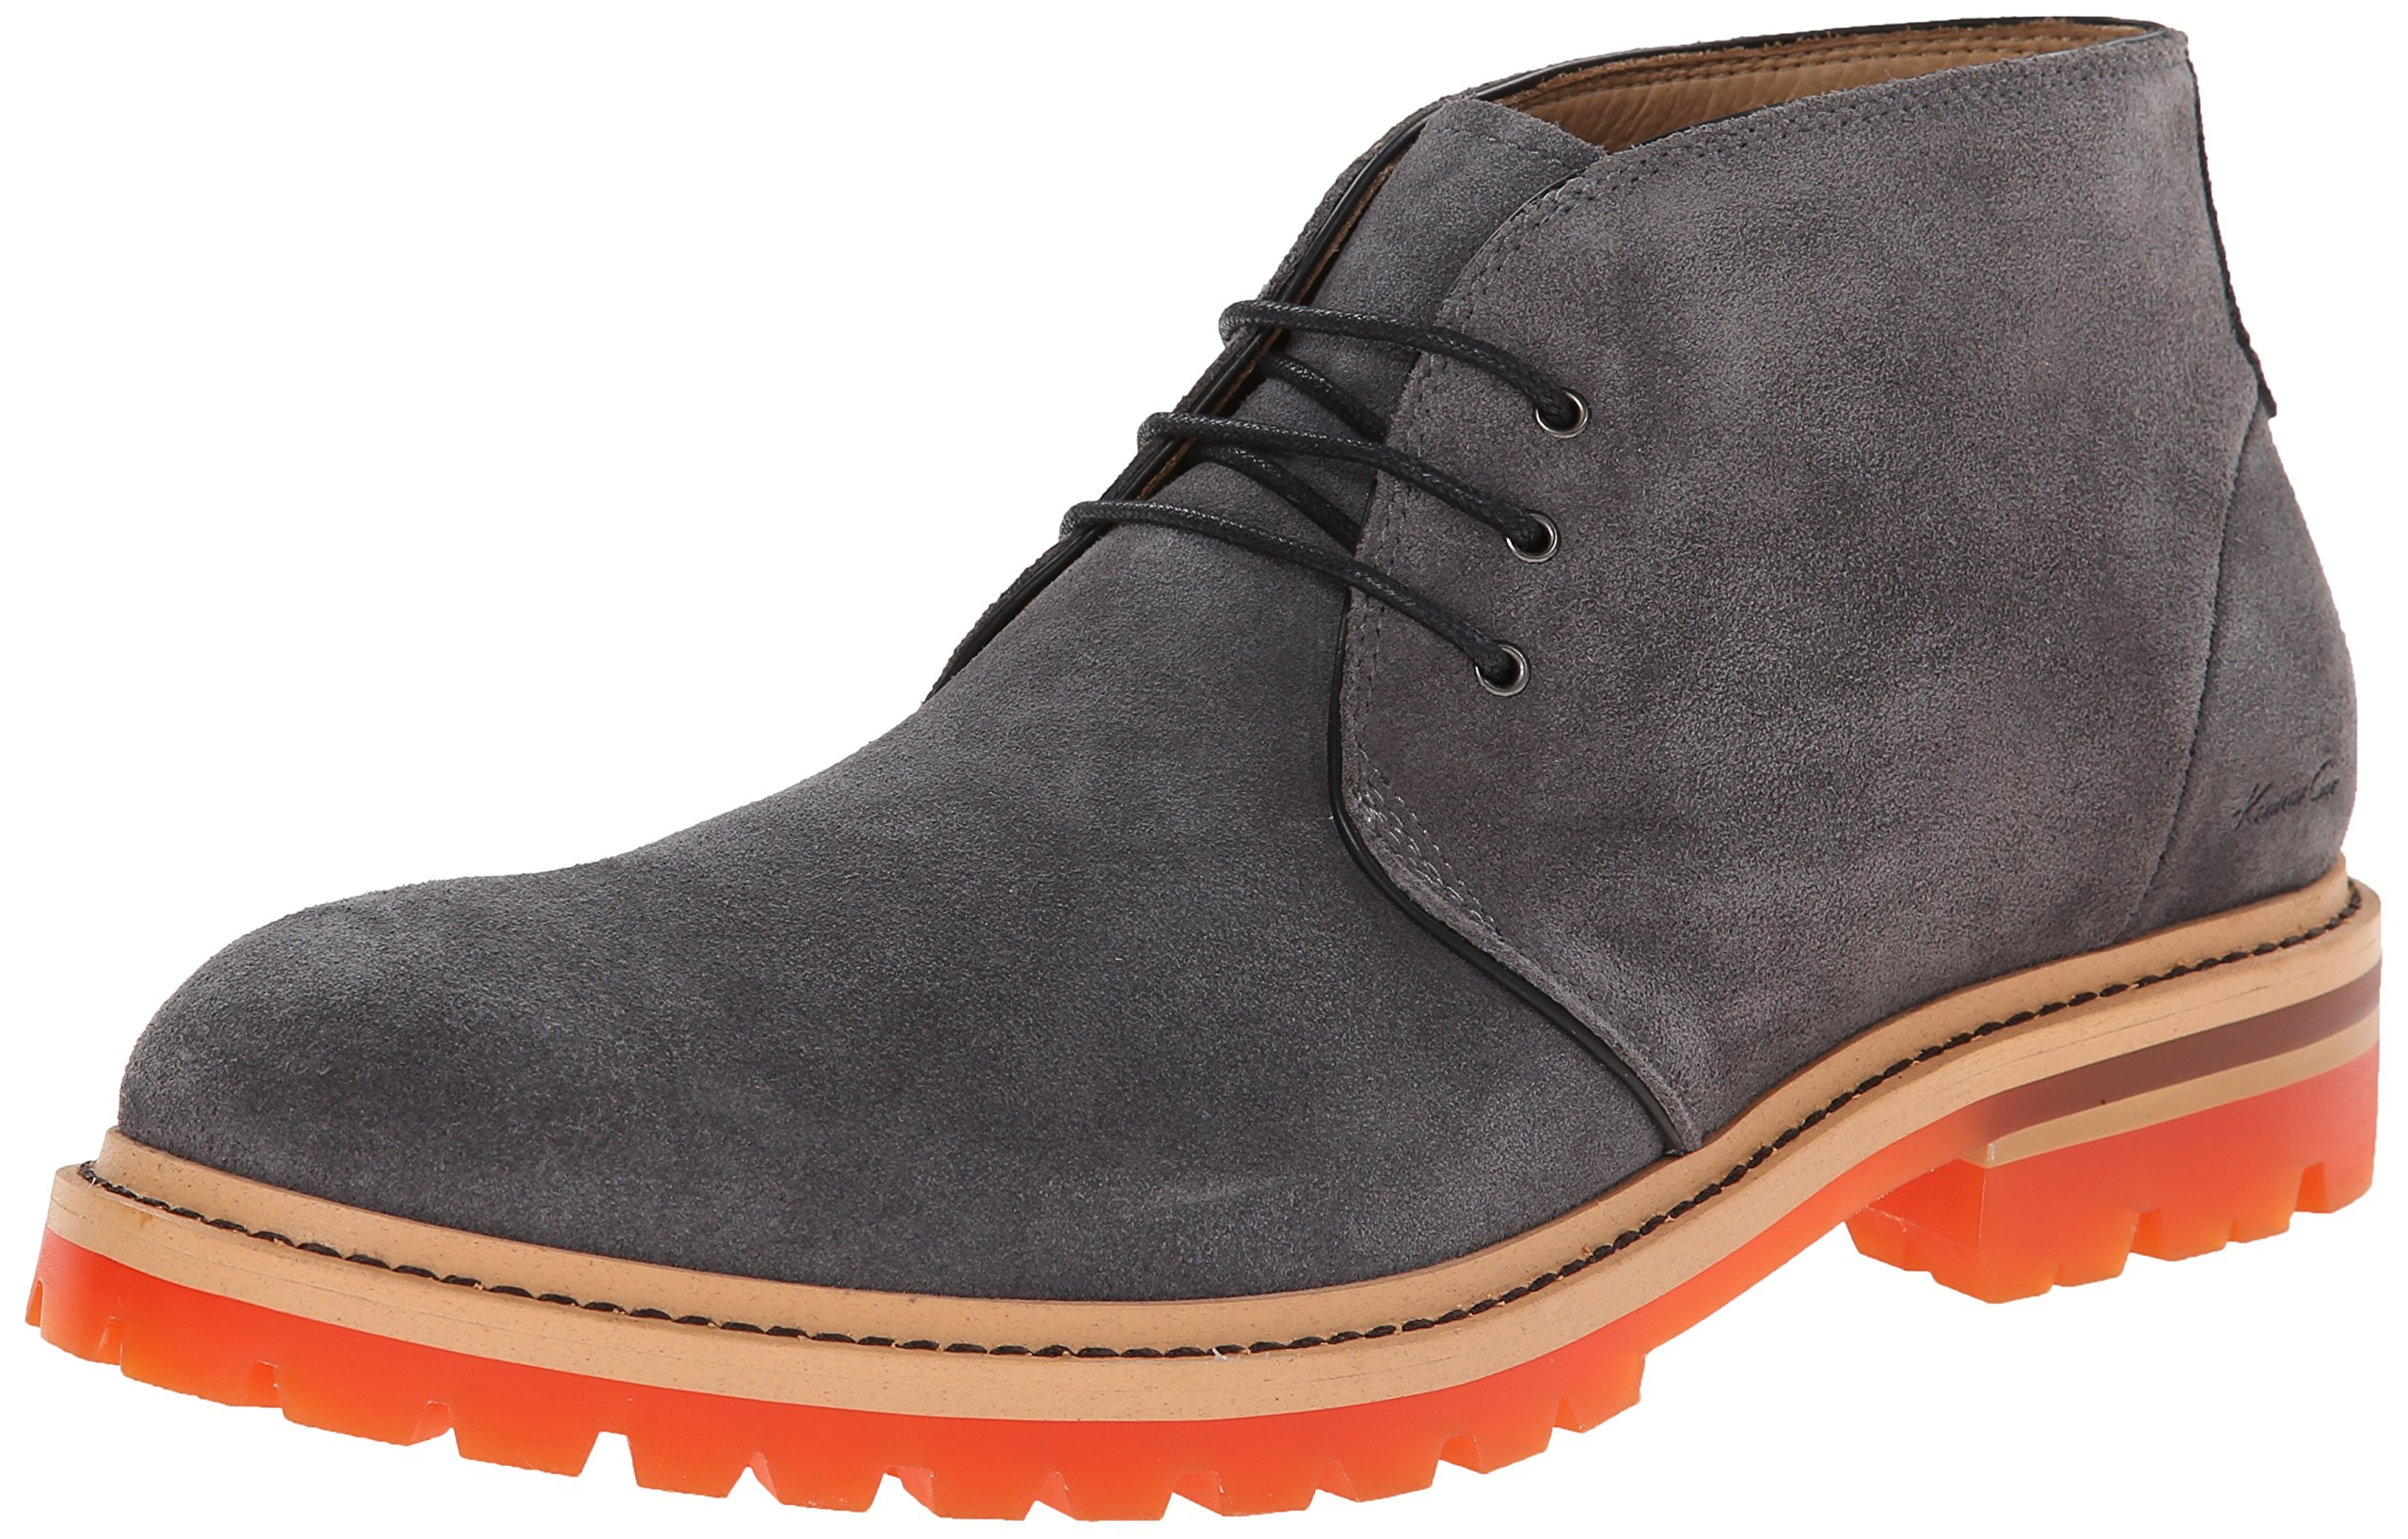 Kenneth Cole New York Men's Strobe Lights Suede Chelsea Boot,Grey,10.5 M US